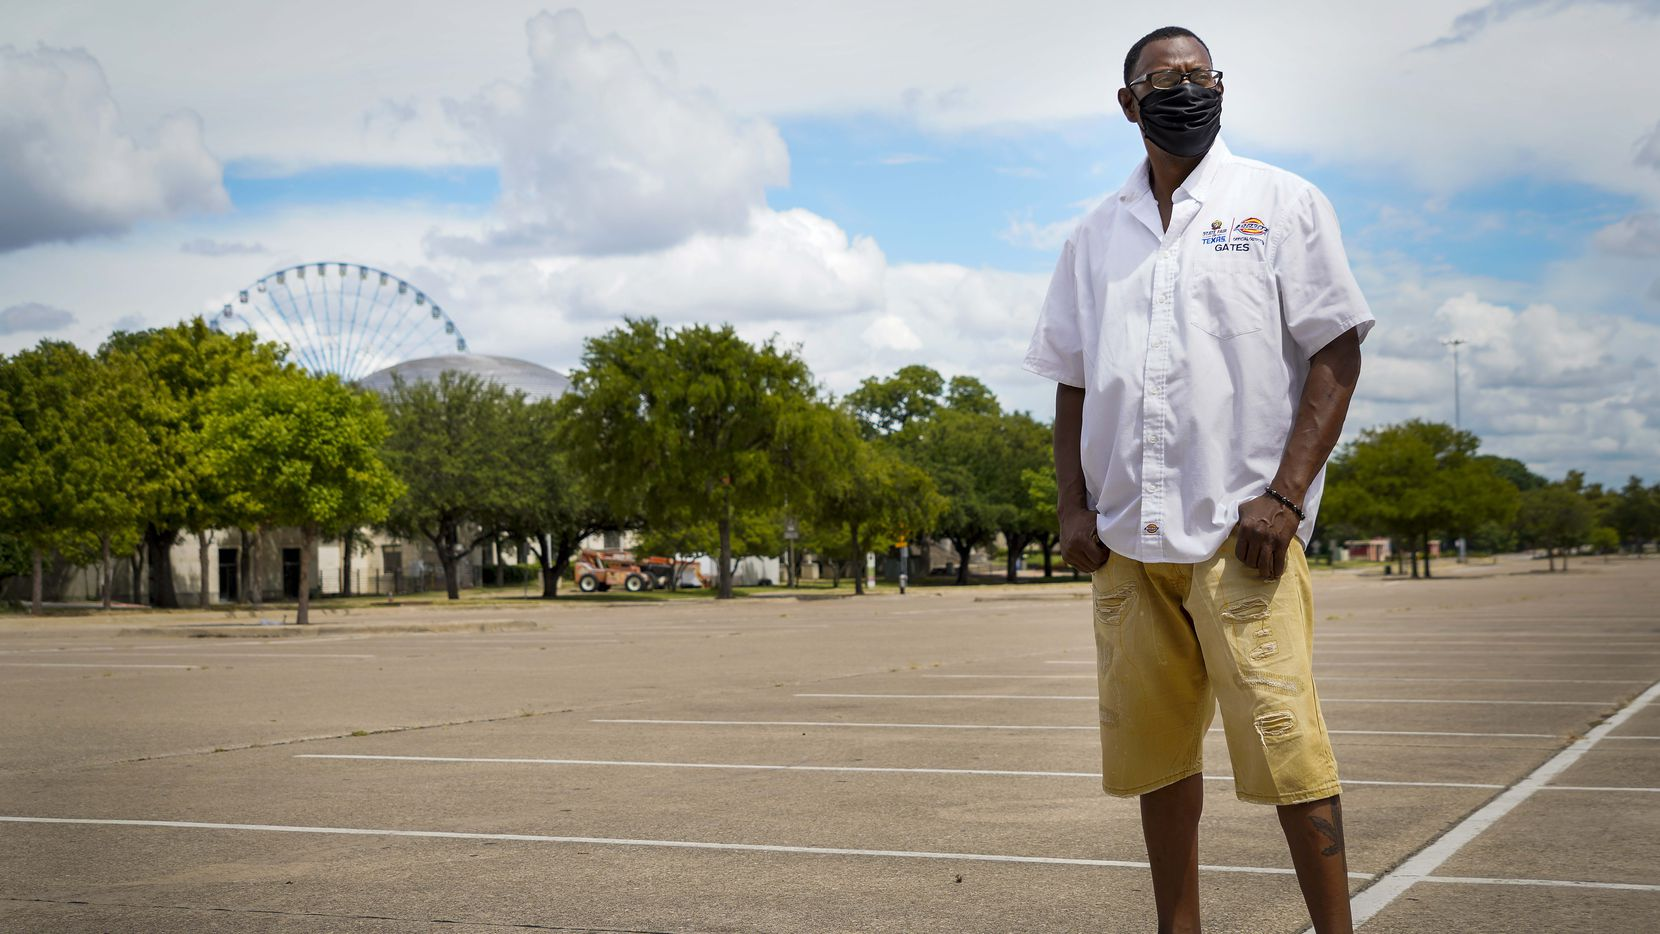 Perry Eakles, a seasonal parking attendant at the State Fair of Texas, photographed in lot 5 at Fair Park on Tuesday, July 21, 2020, in Dallas. (Smiley N. Pool/The Dallas Morning News)